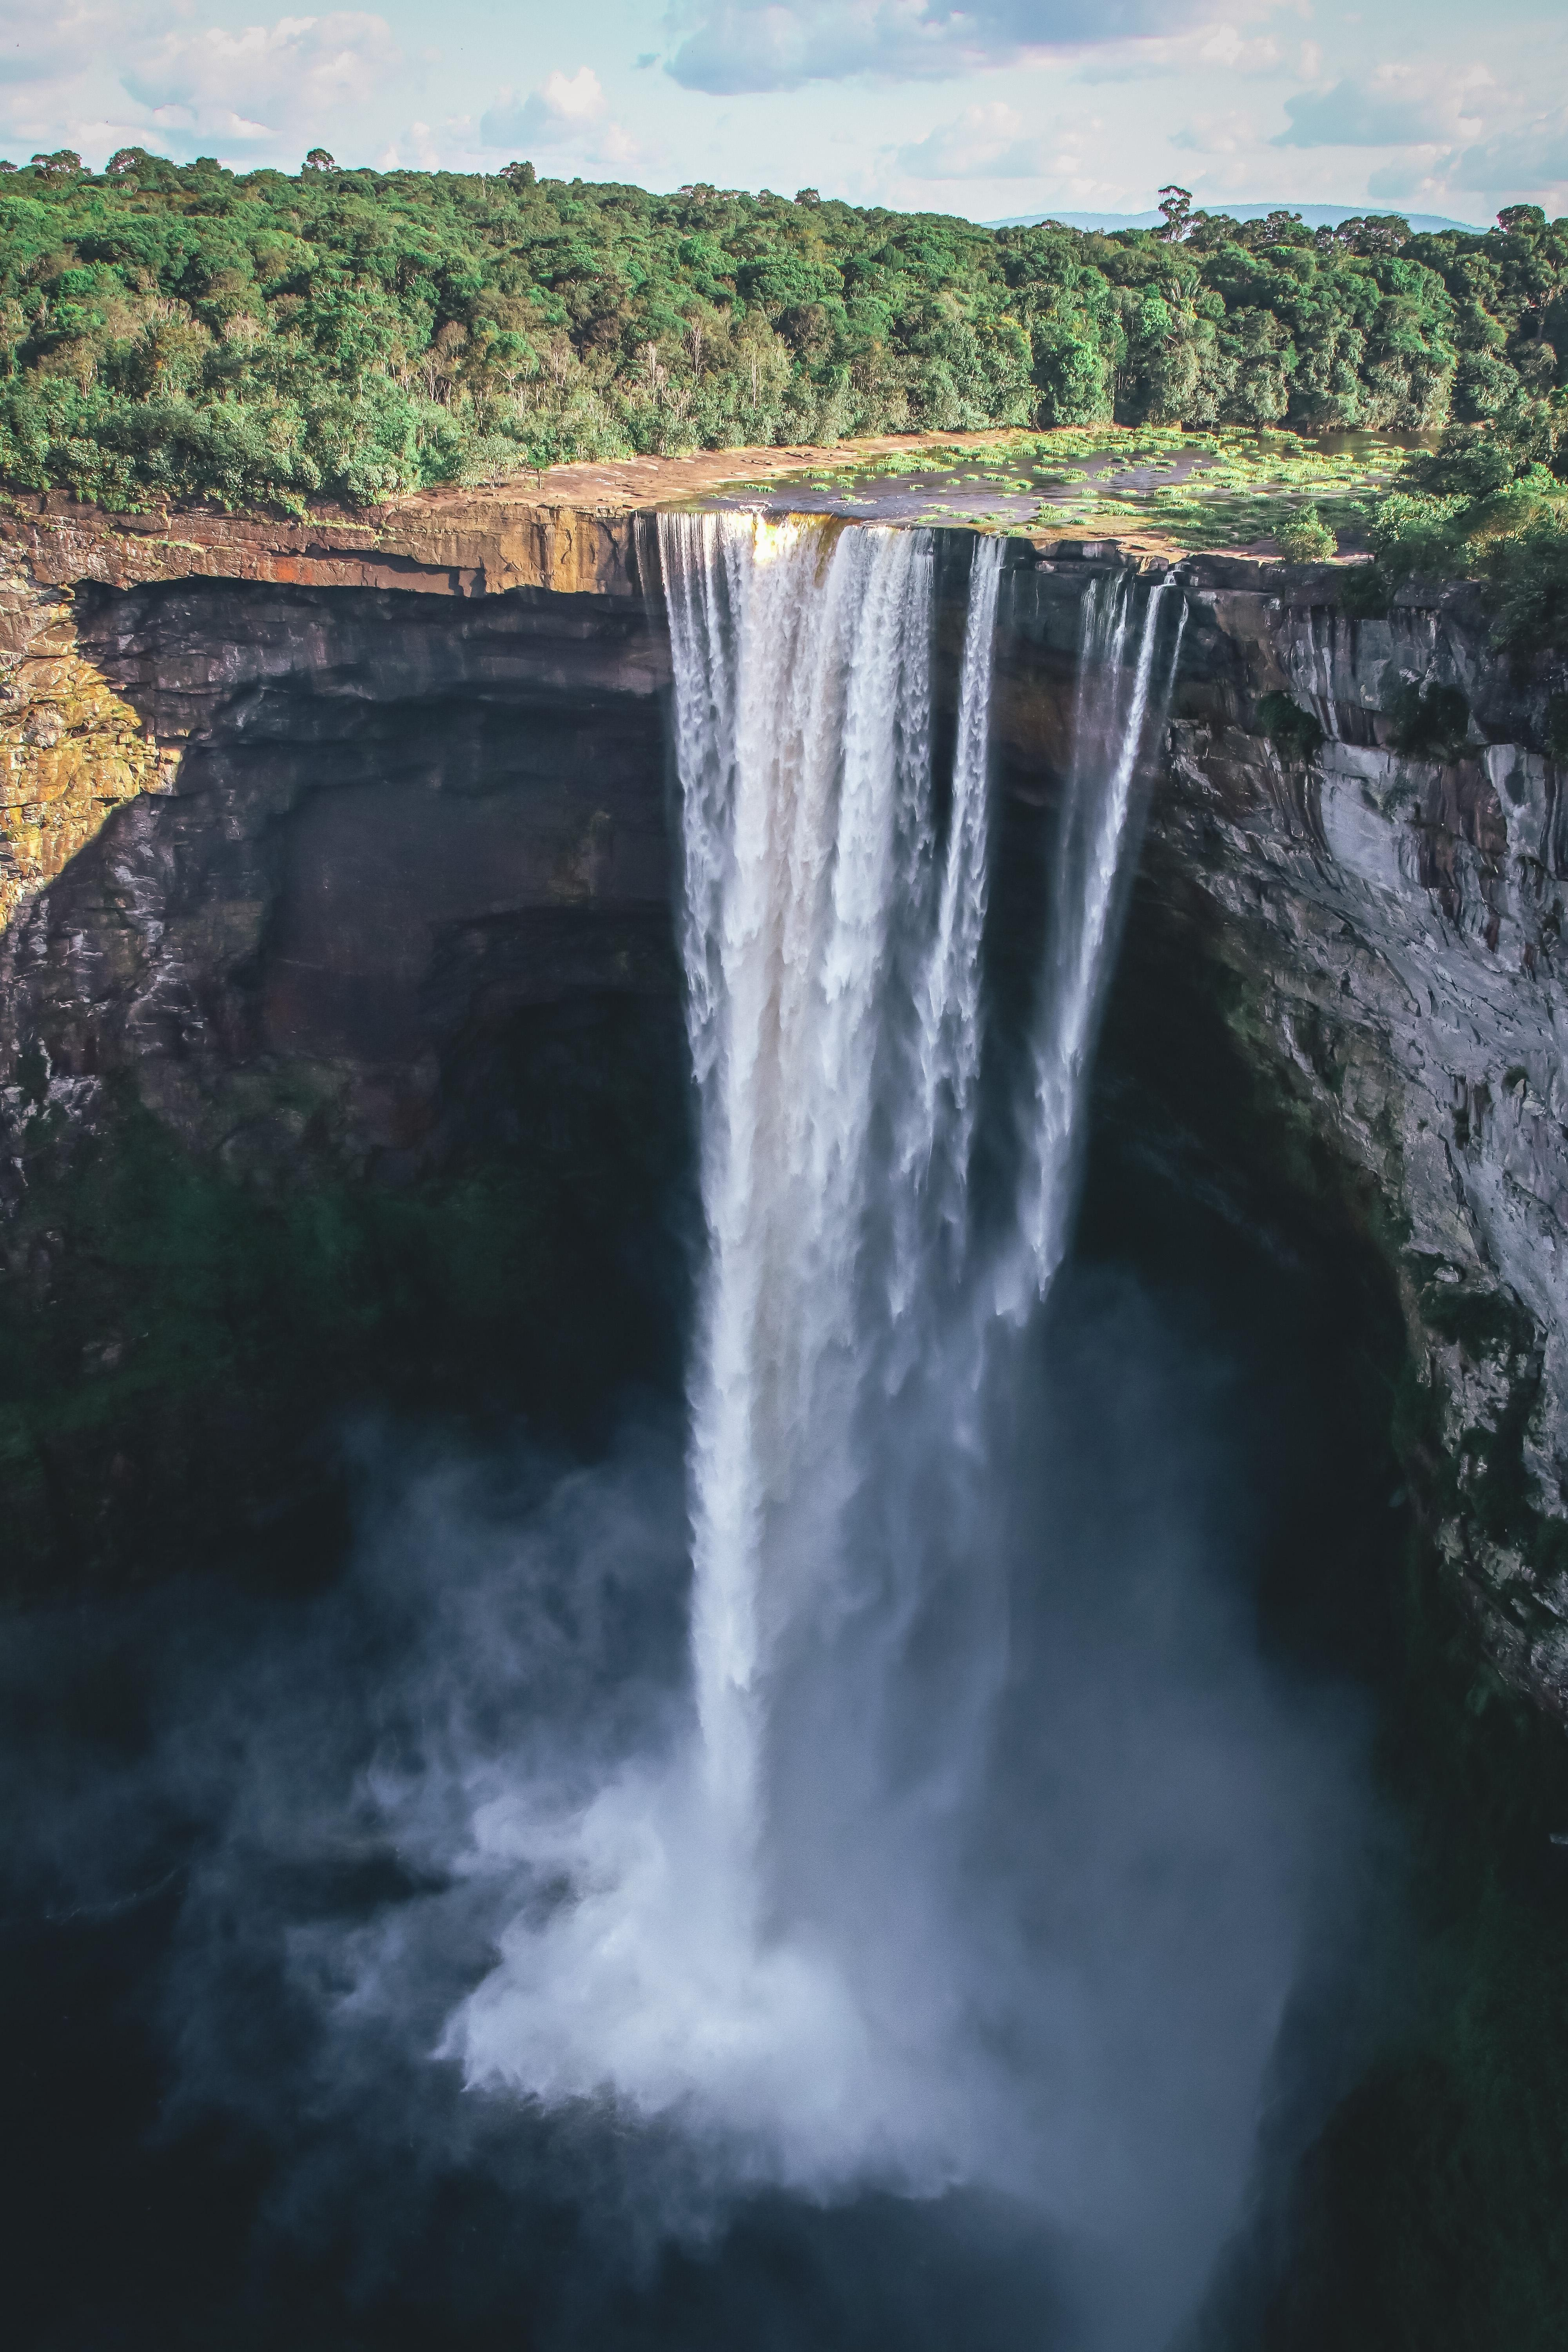 One of the largest and least accessible waterfalls in the world